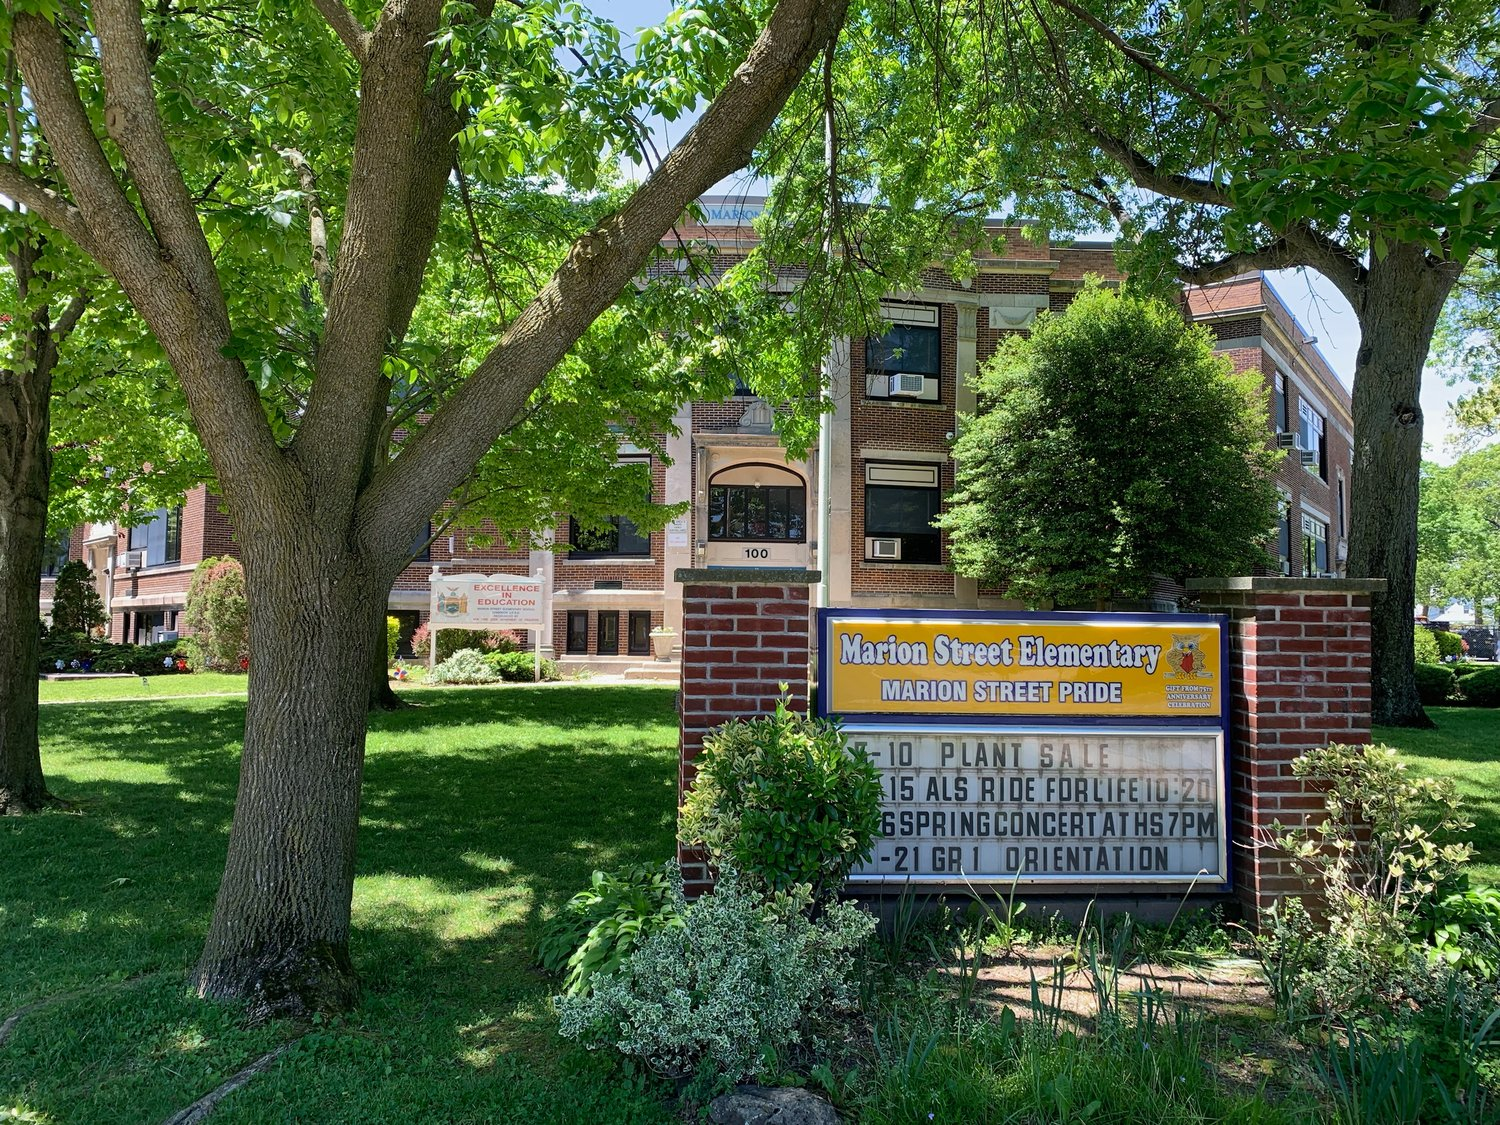 Lynbrook school officials are studying ways to combat overcrowding at Marion Street Elementary School. There are now 448 students enrolled at the school, and it is expected to receive 24 new students next year.